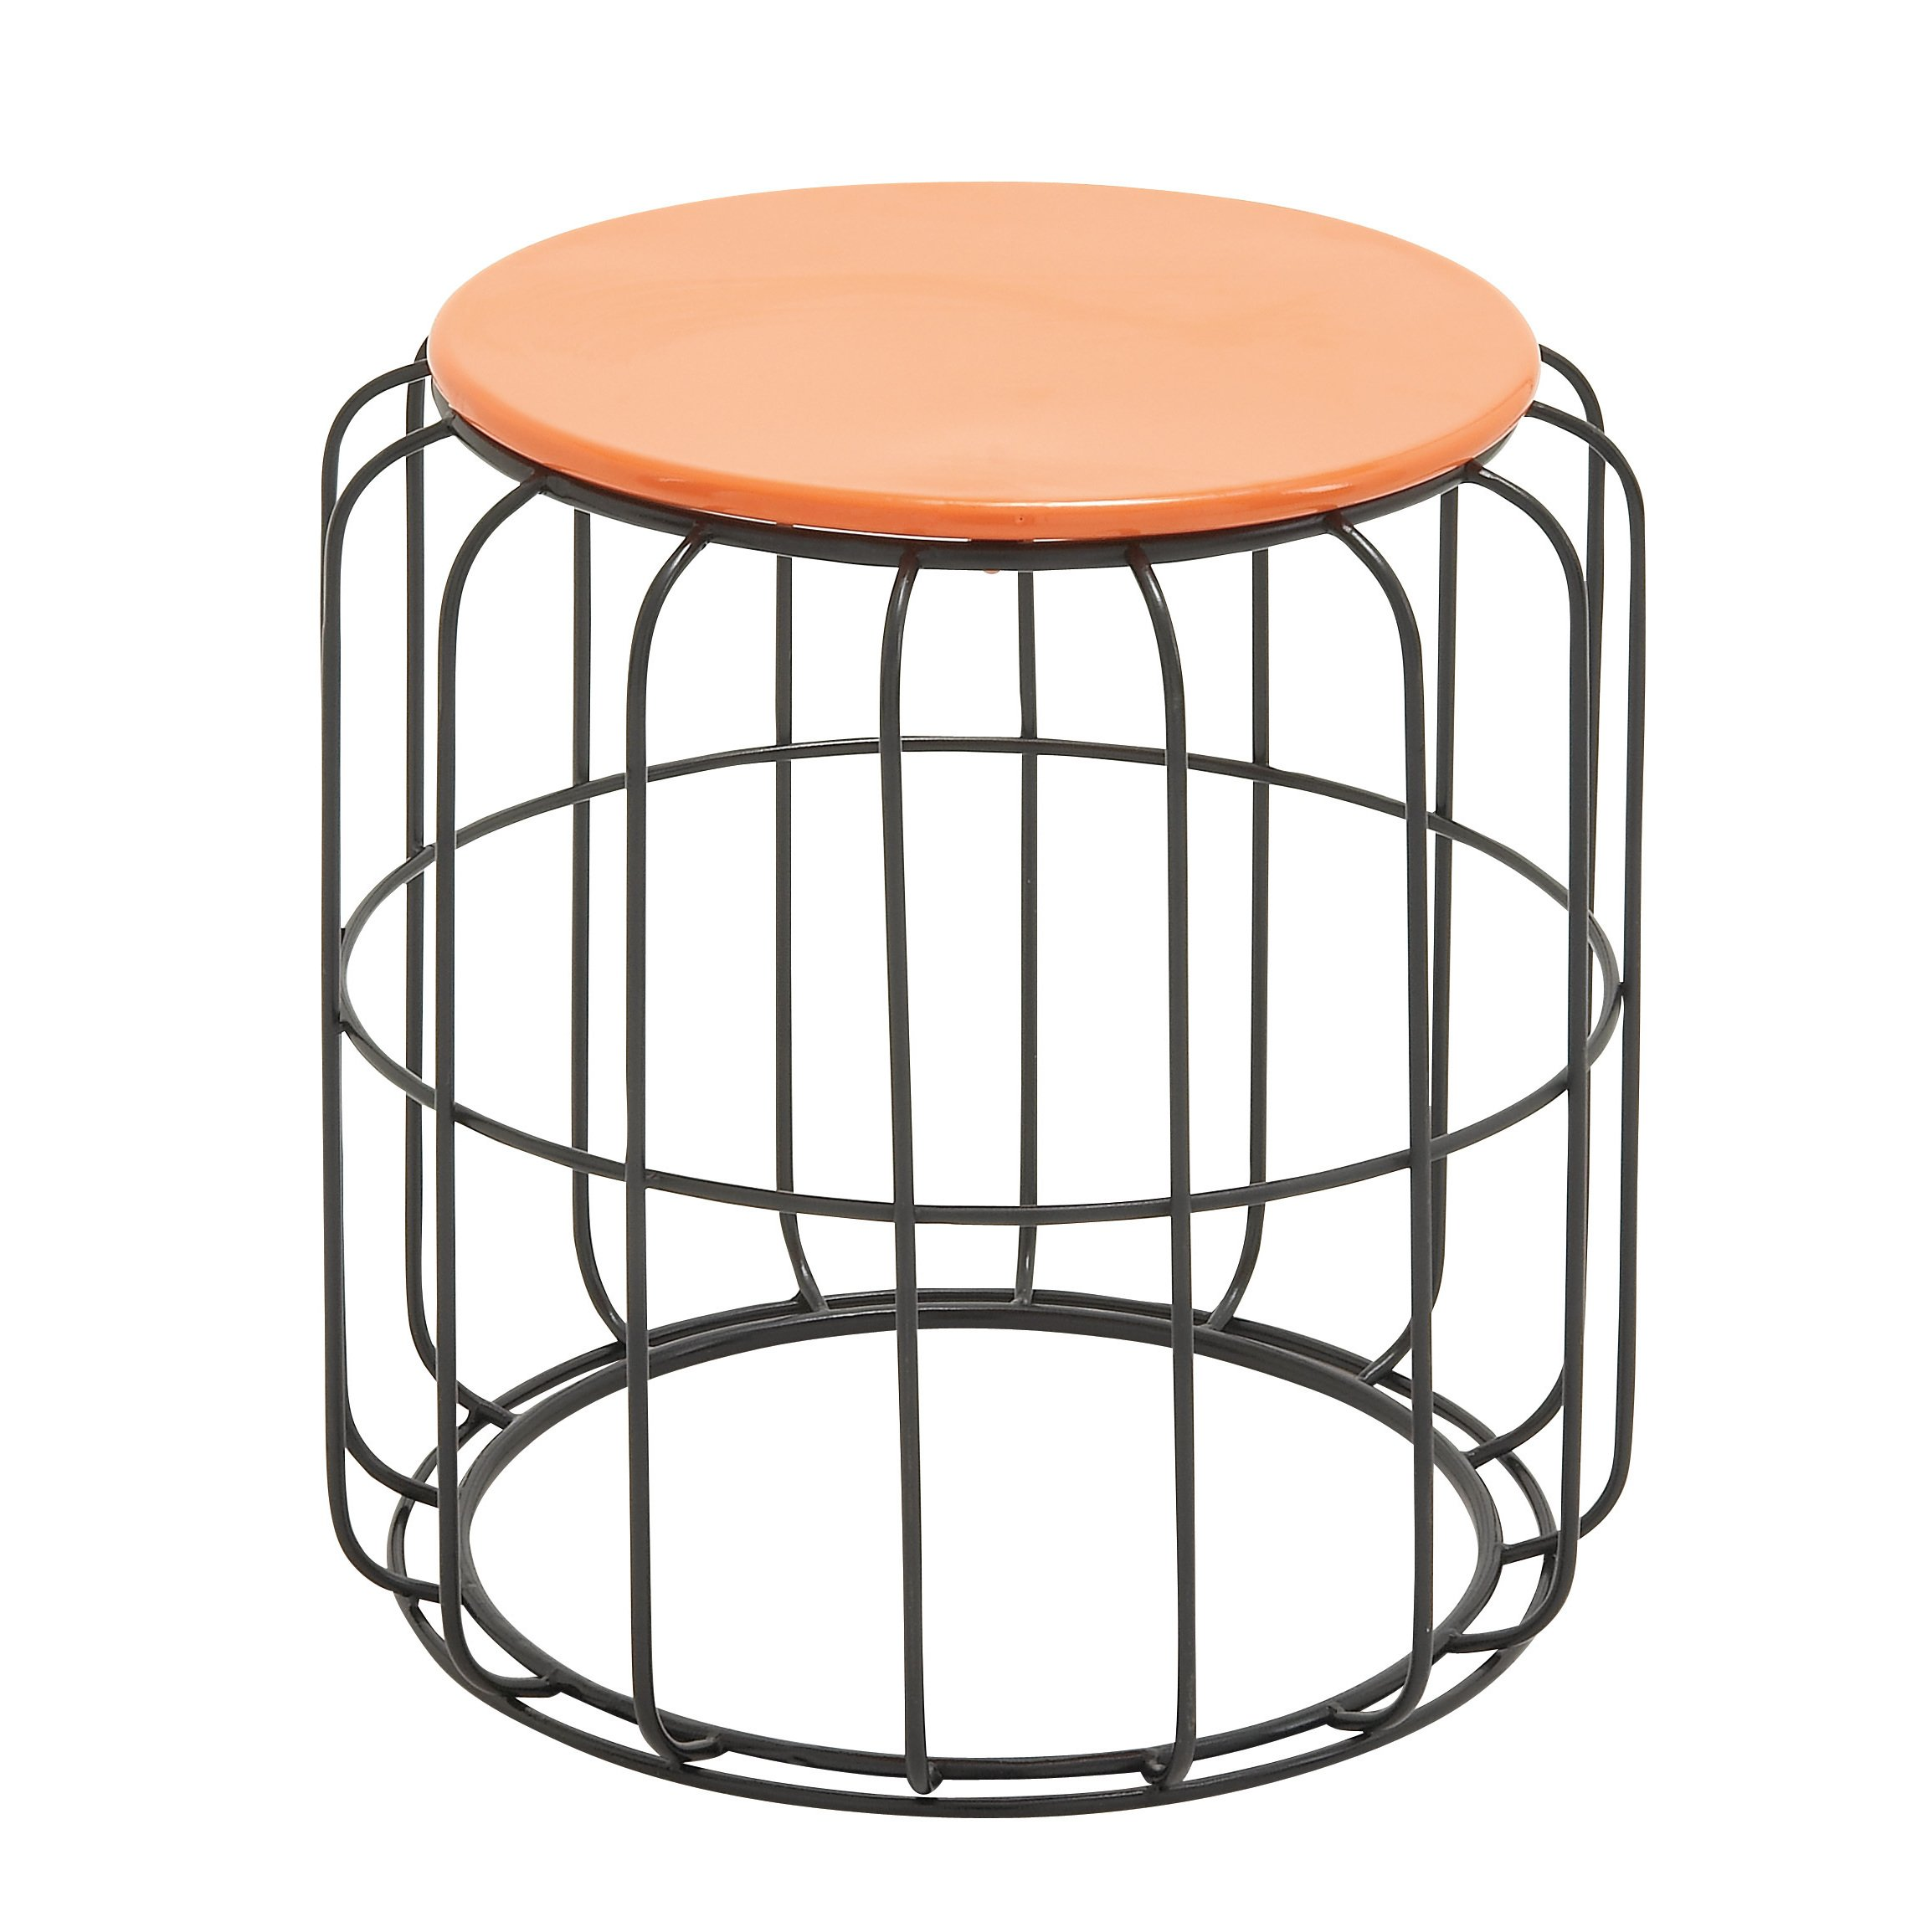 round wire side table orange top free shipping today outdoor tables for small spaces electric wall clock home goods kitchen console lamp design ikea dining set runner quilt kits